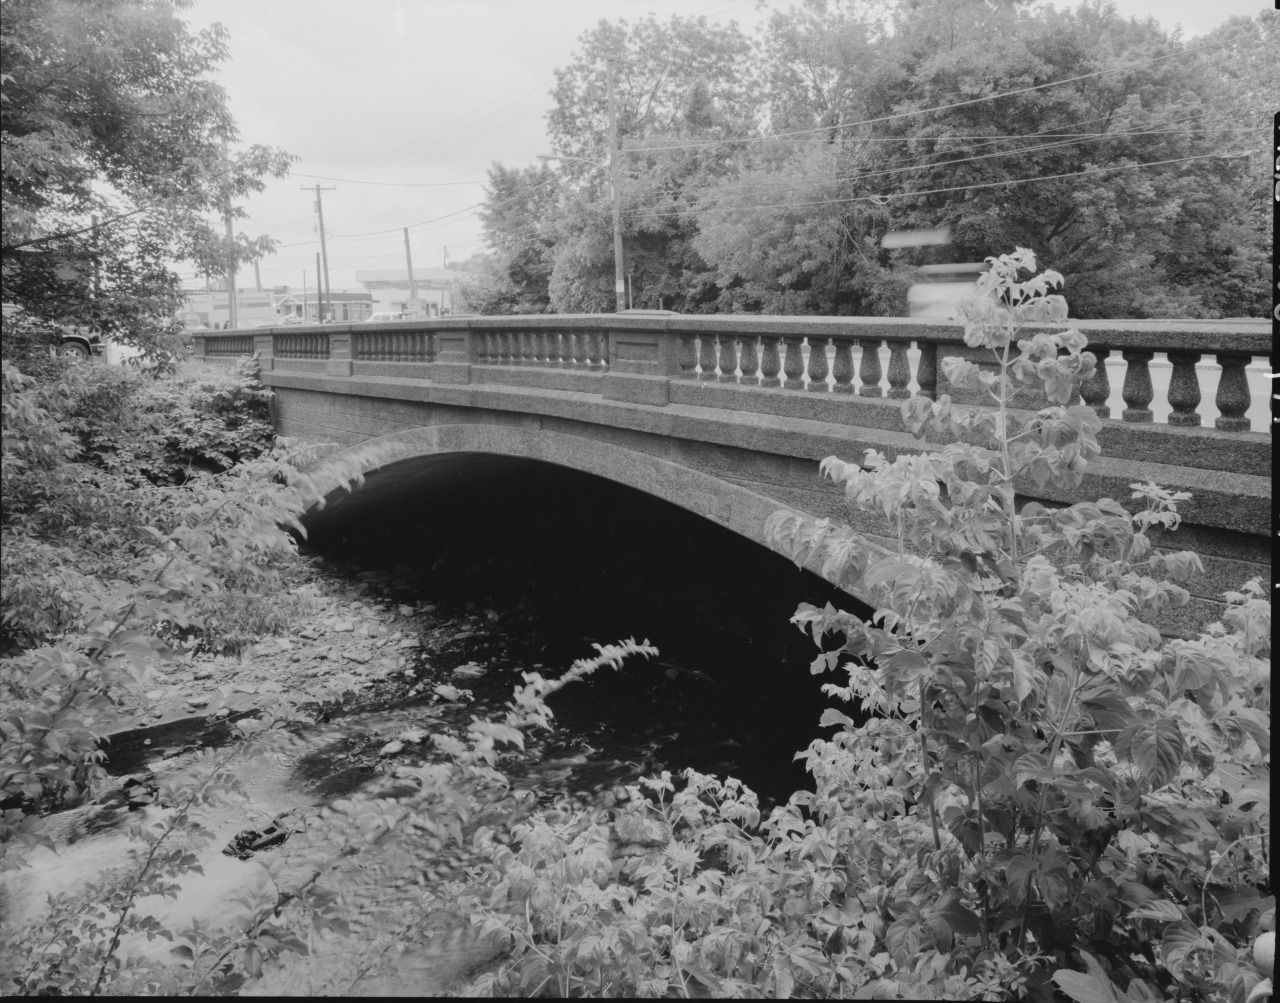 The Frankford Avenue Bridge, Philadelphia, PA. Constructed